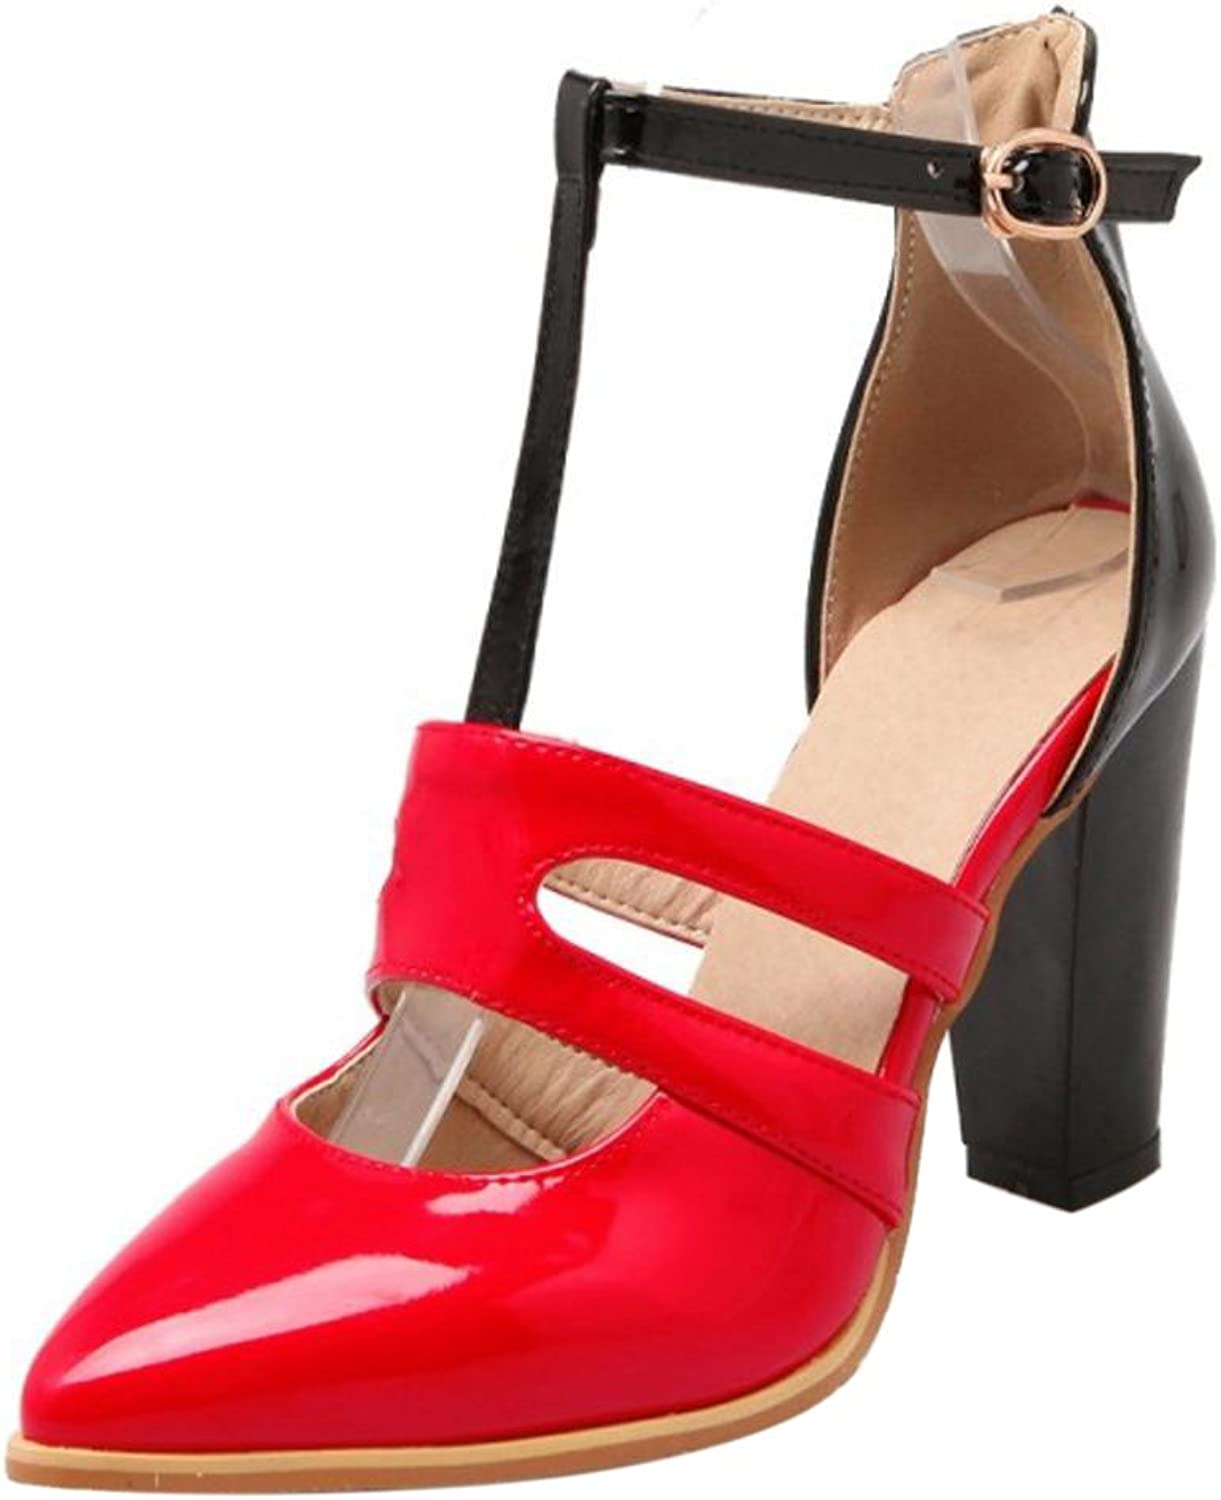 FizaiZifai Women Strap Block Heel Pumps